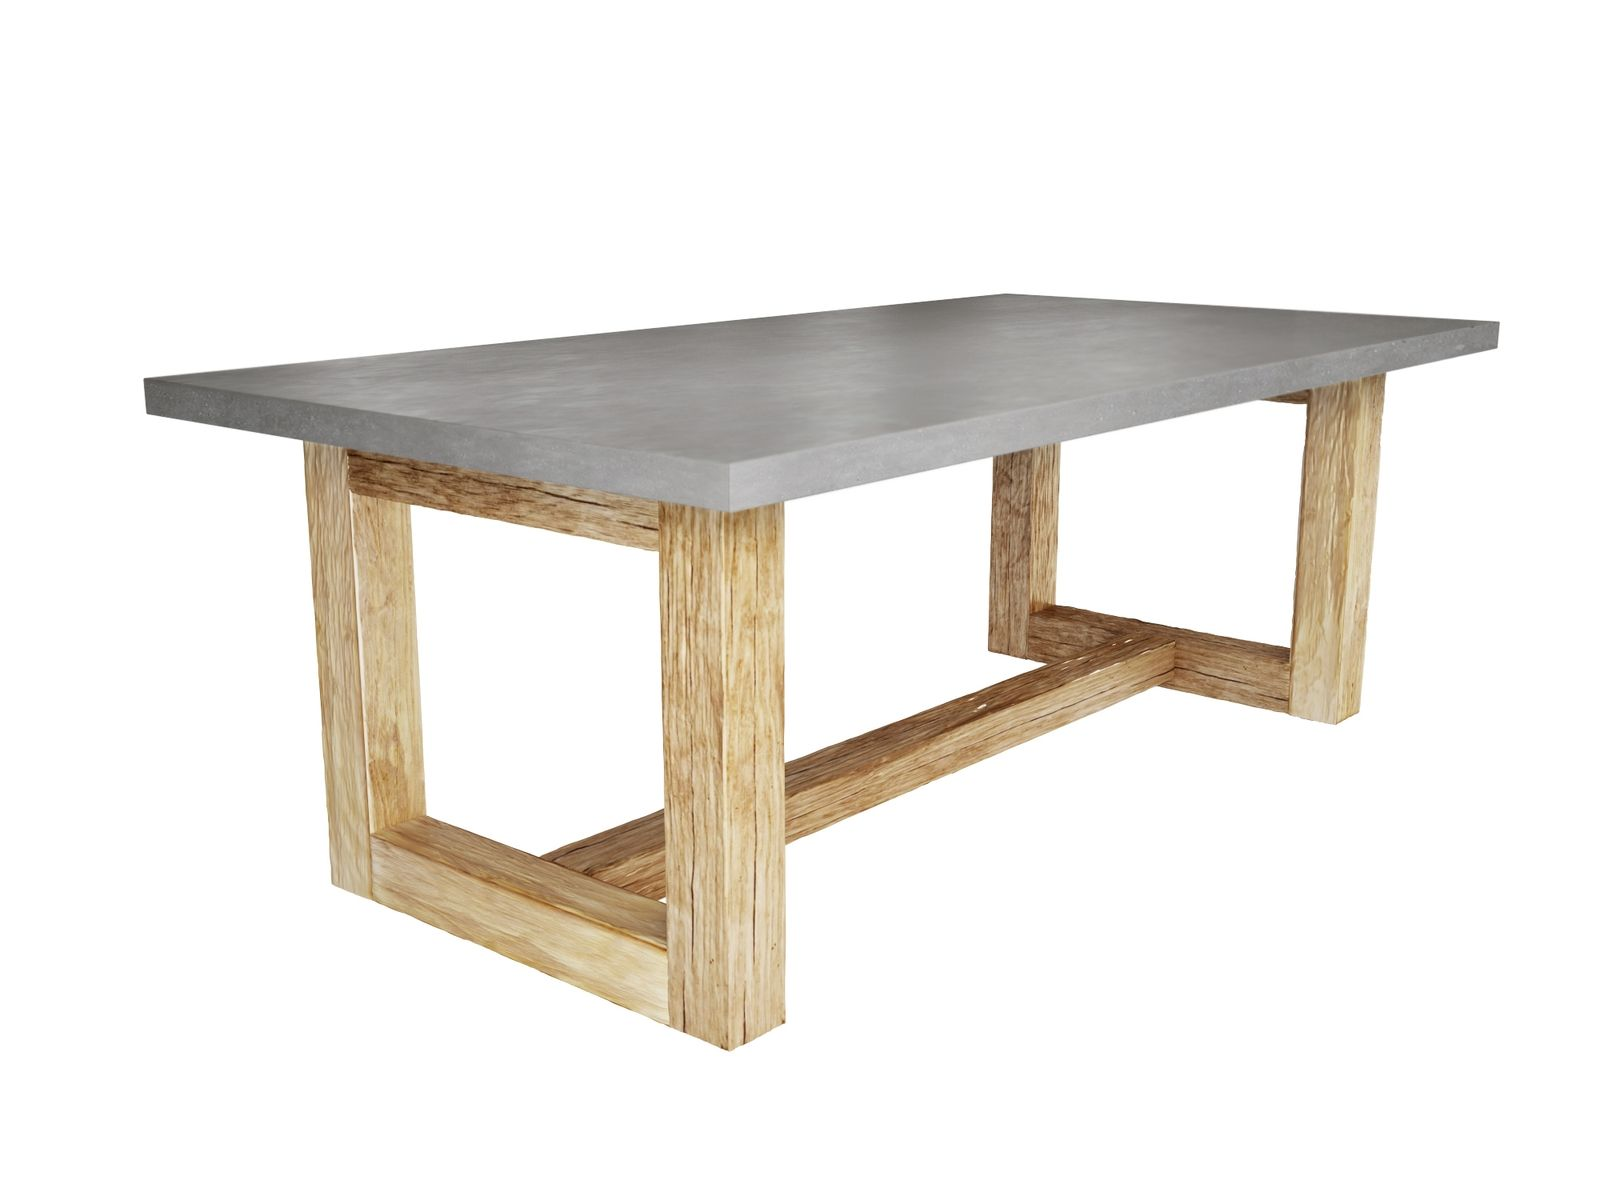 Hand crafted zen wood dining table by trueform concrete for Unique wood dining room tables